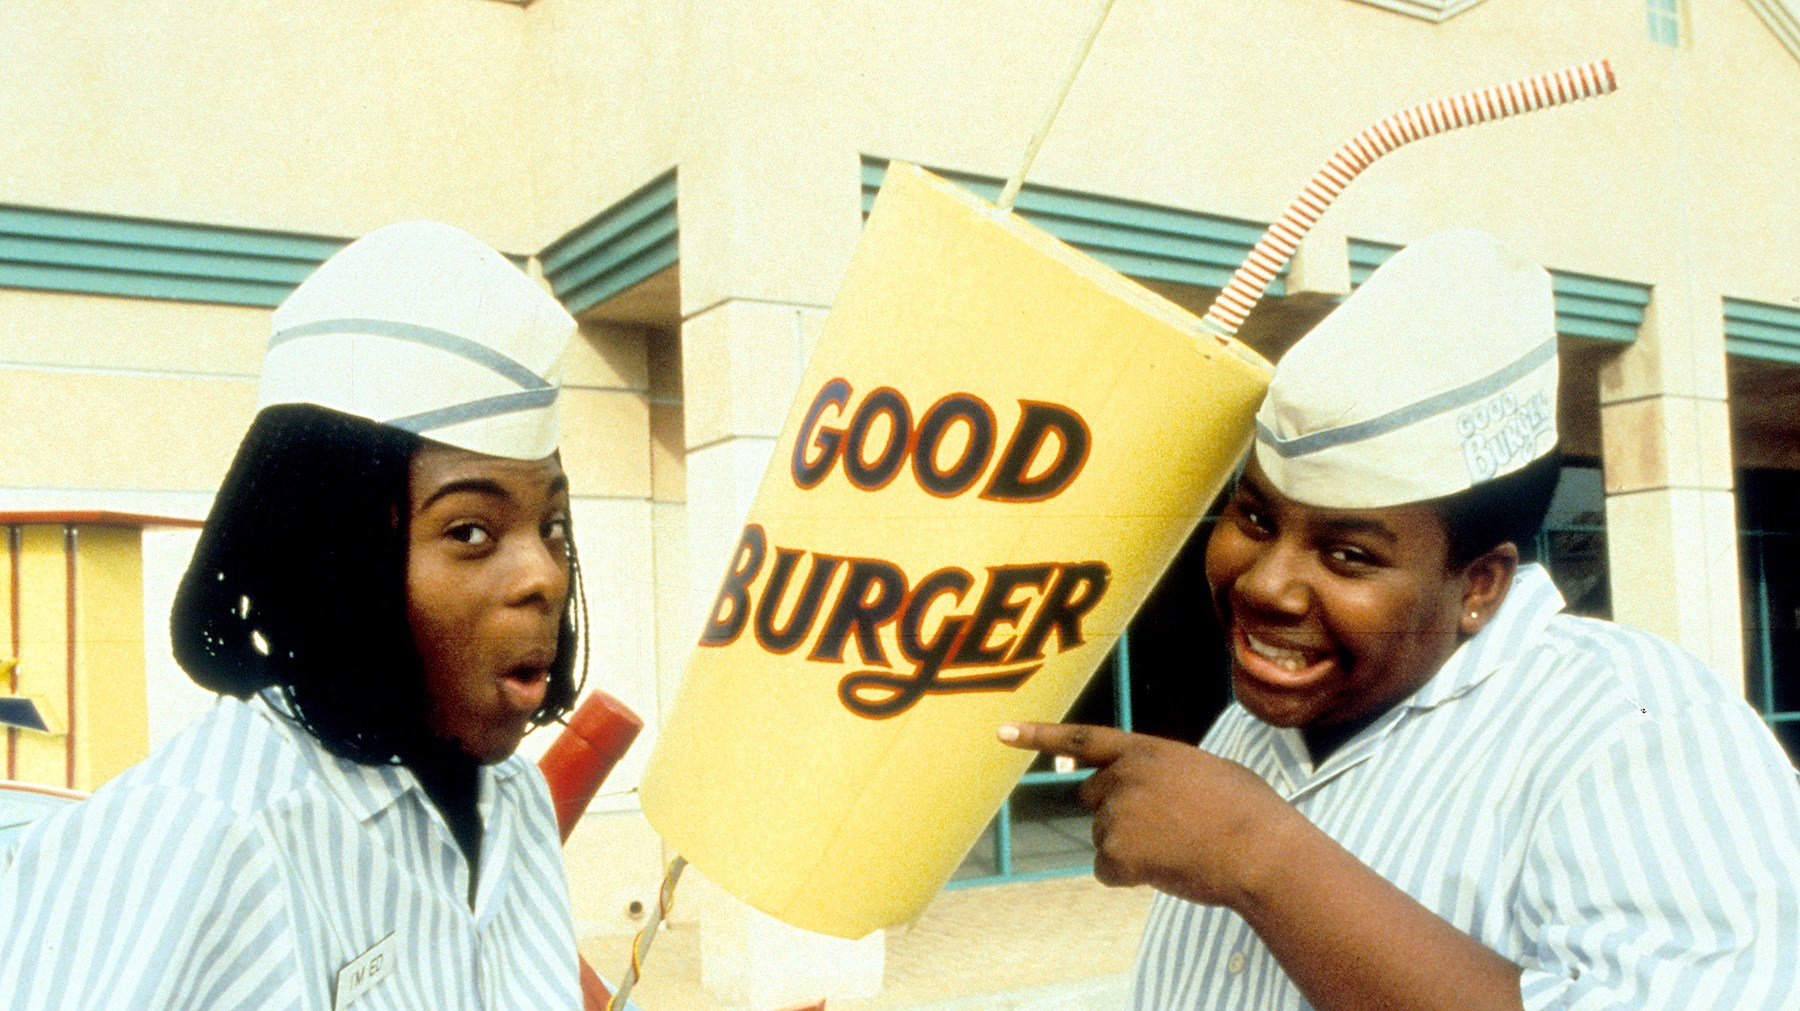 Kel Mitchell and Kenan Thompson in 'Good Burger', 1997.